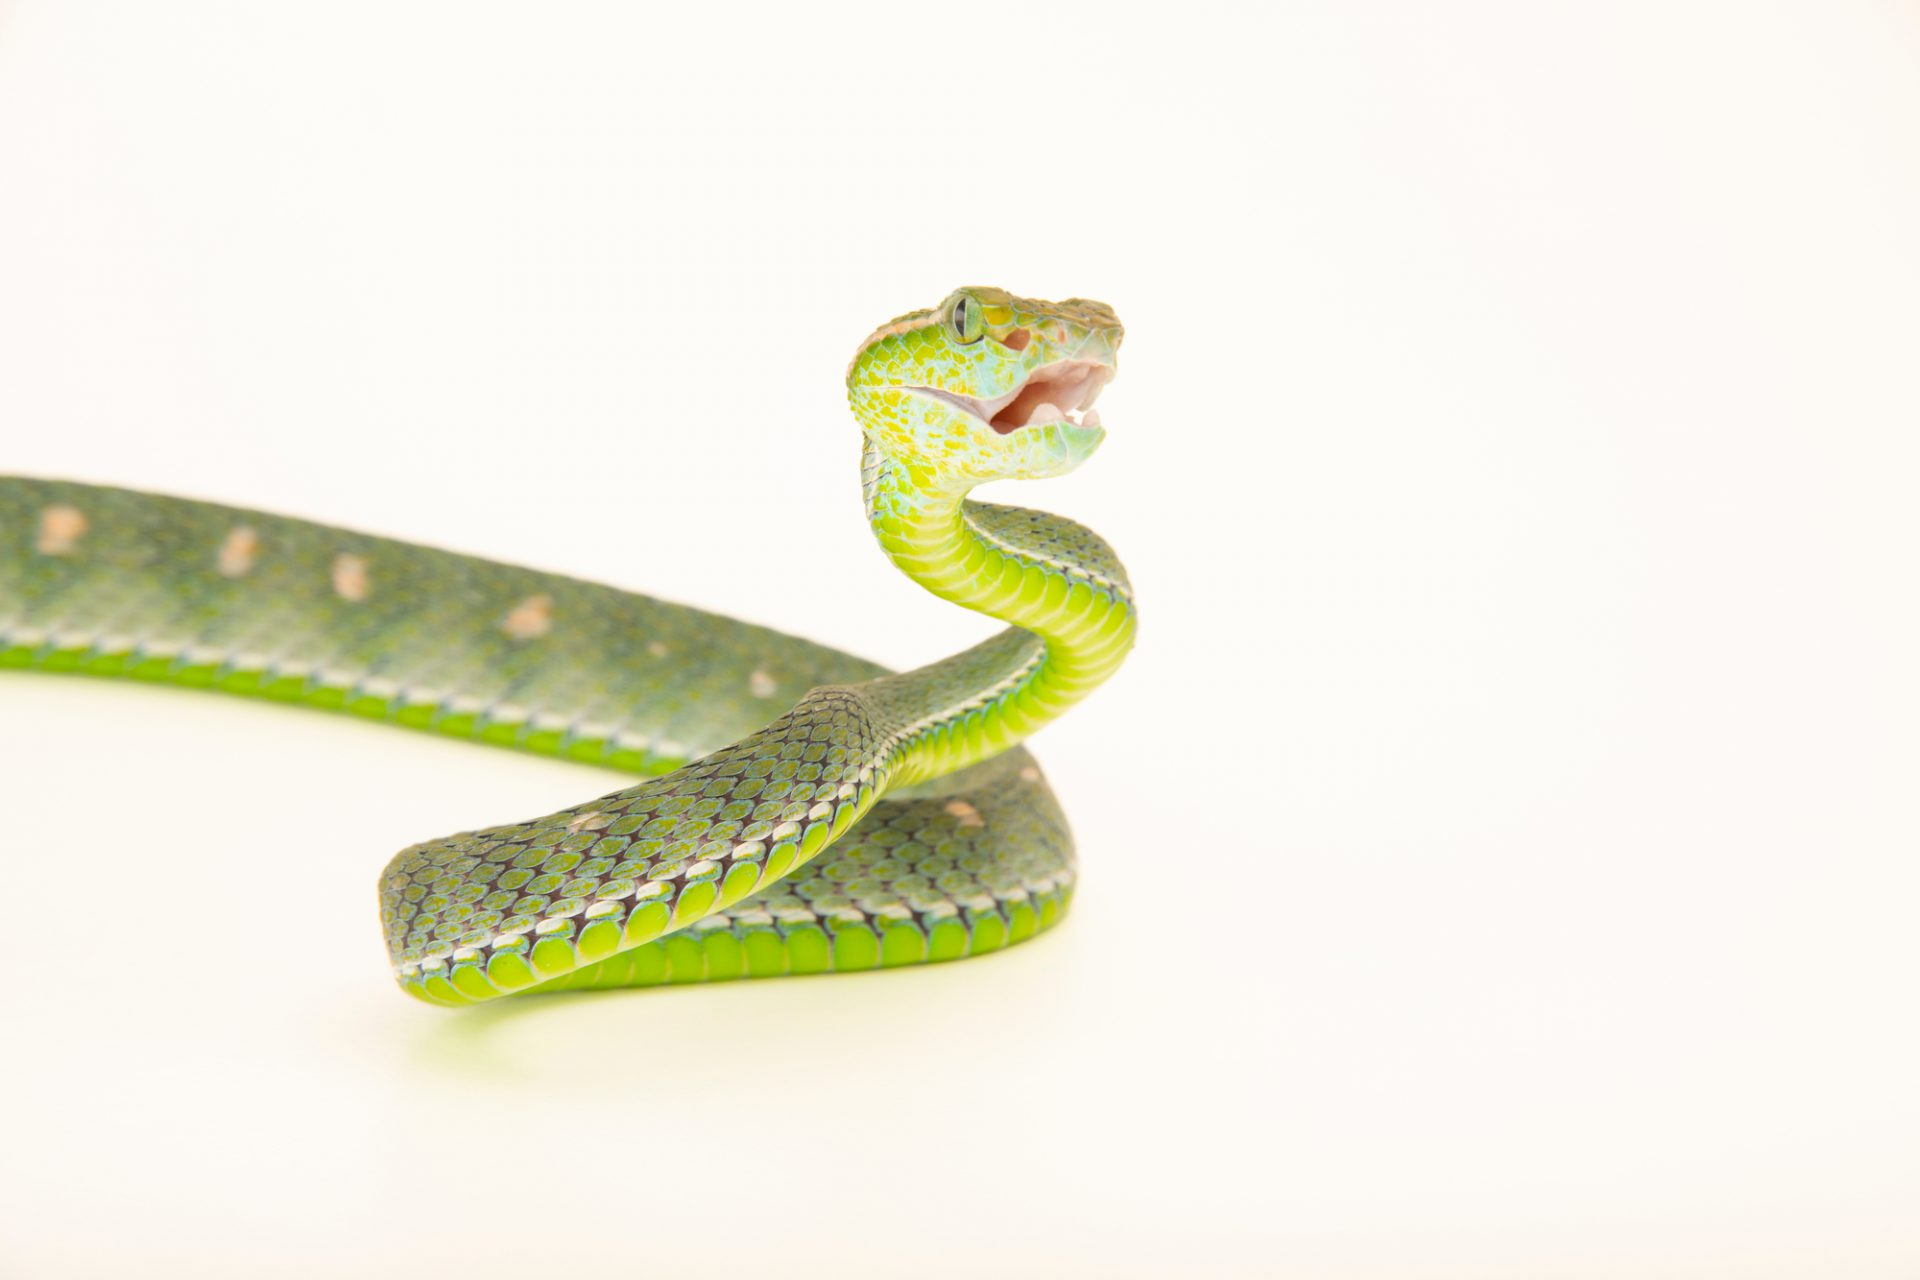 Photo: Hagen's pit viper (Trimeresurus hageni) from the private collection in San Antonio.